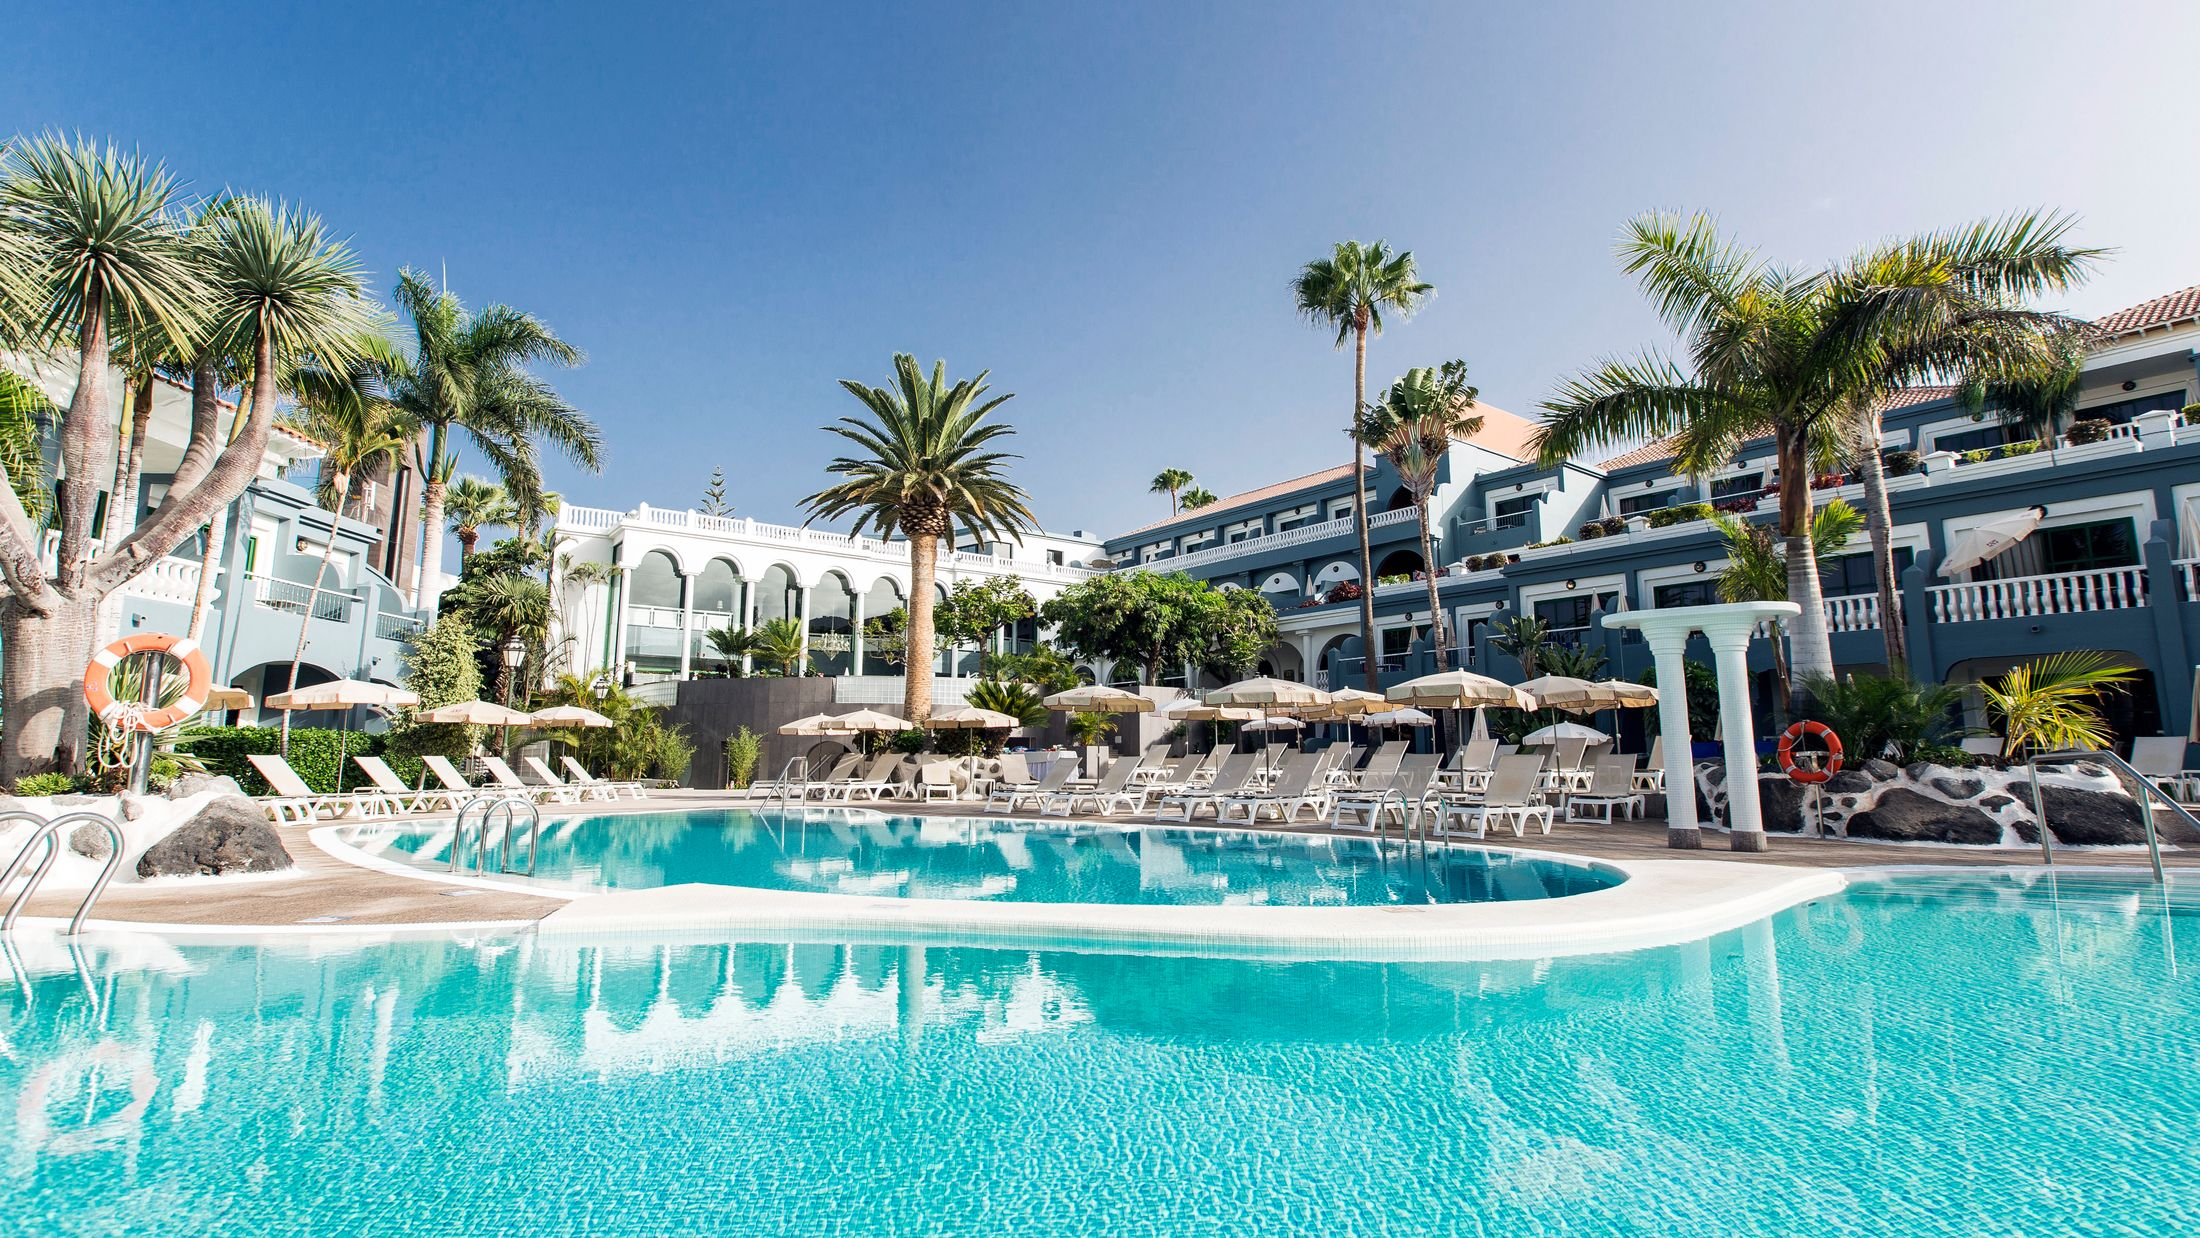 Luxury Hotels In Tenerife 2019 2020 Sovereign